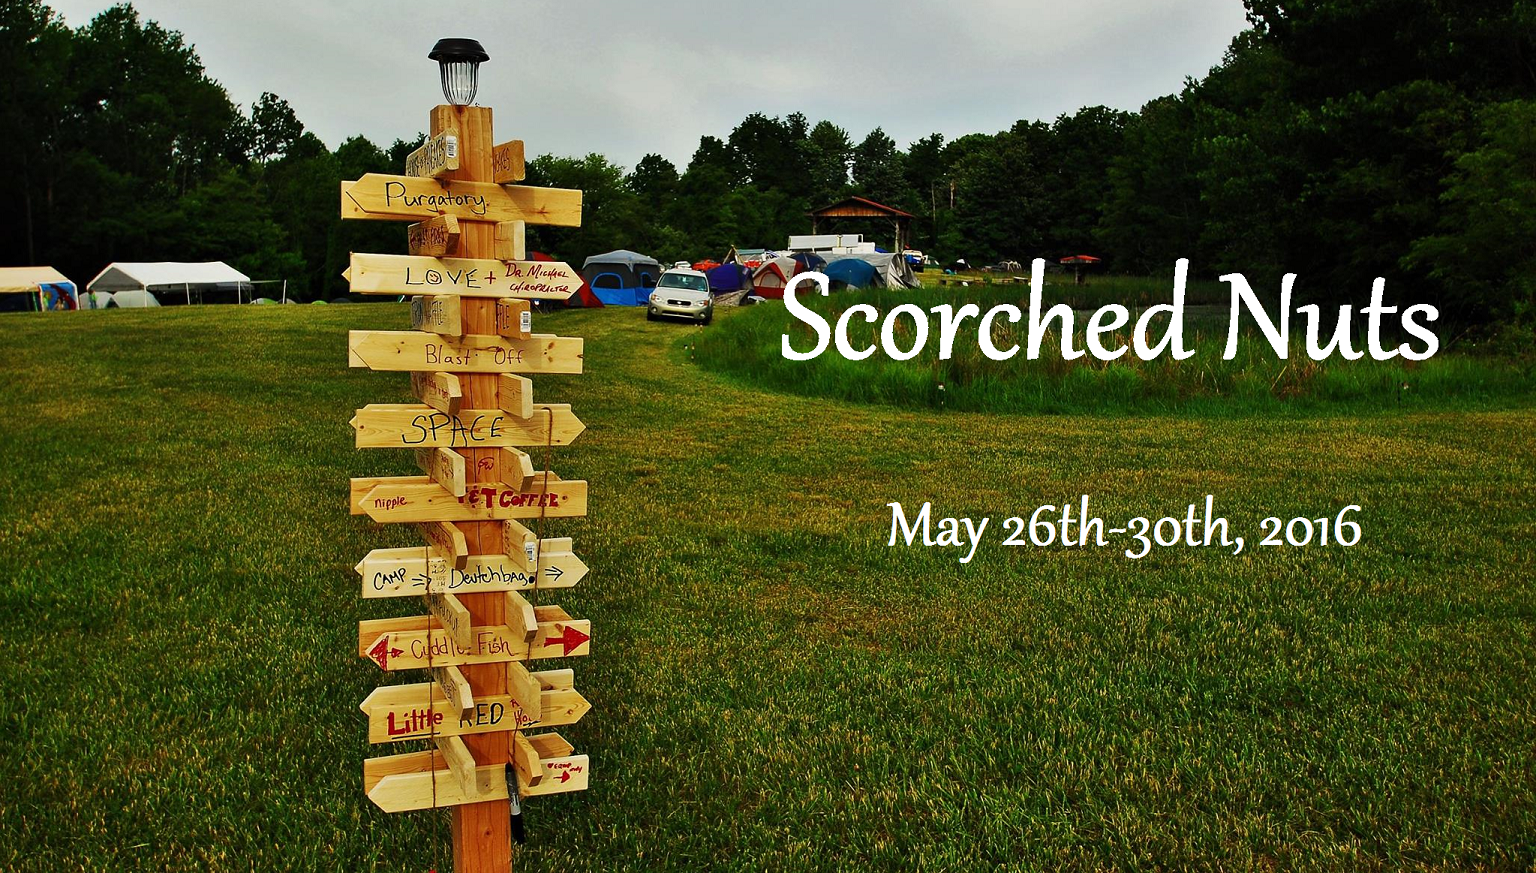 Scorched Nuts   May 26th-30th, 2016